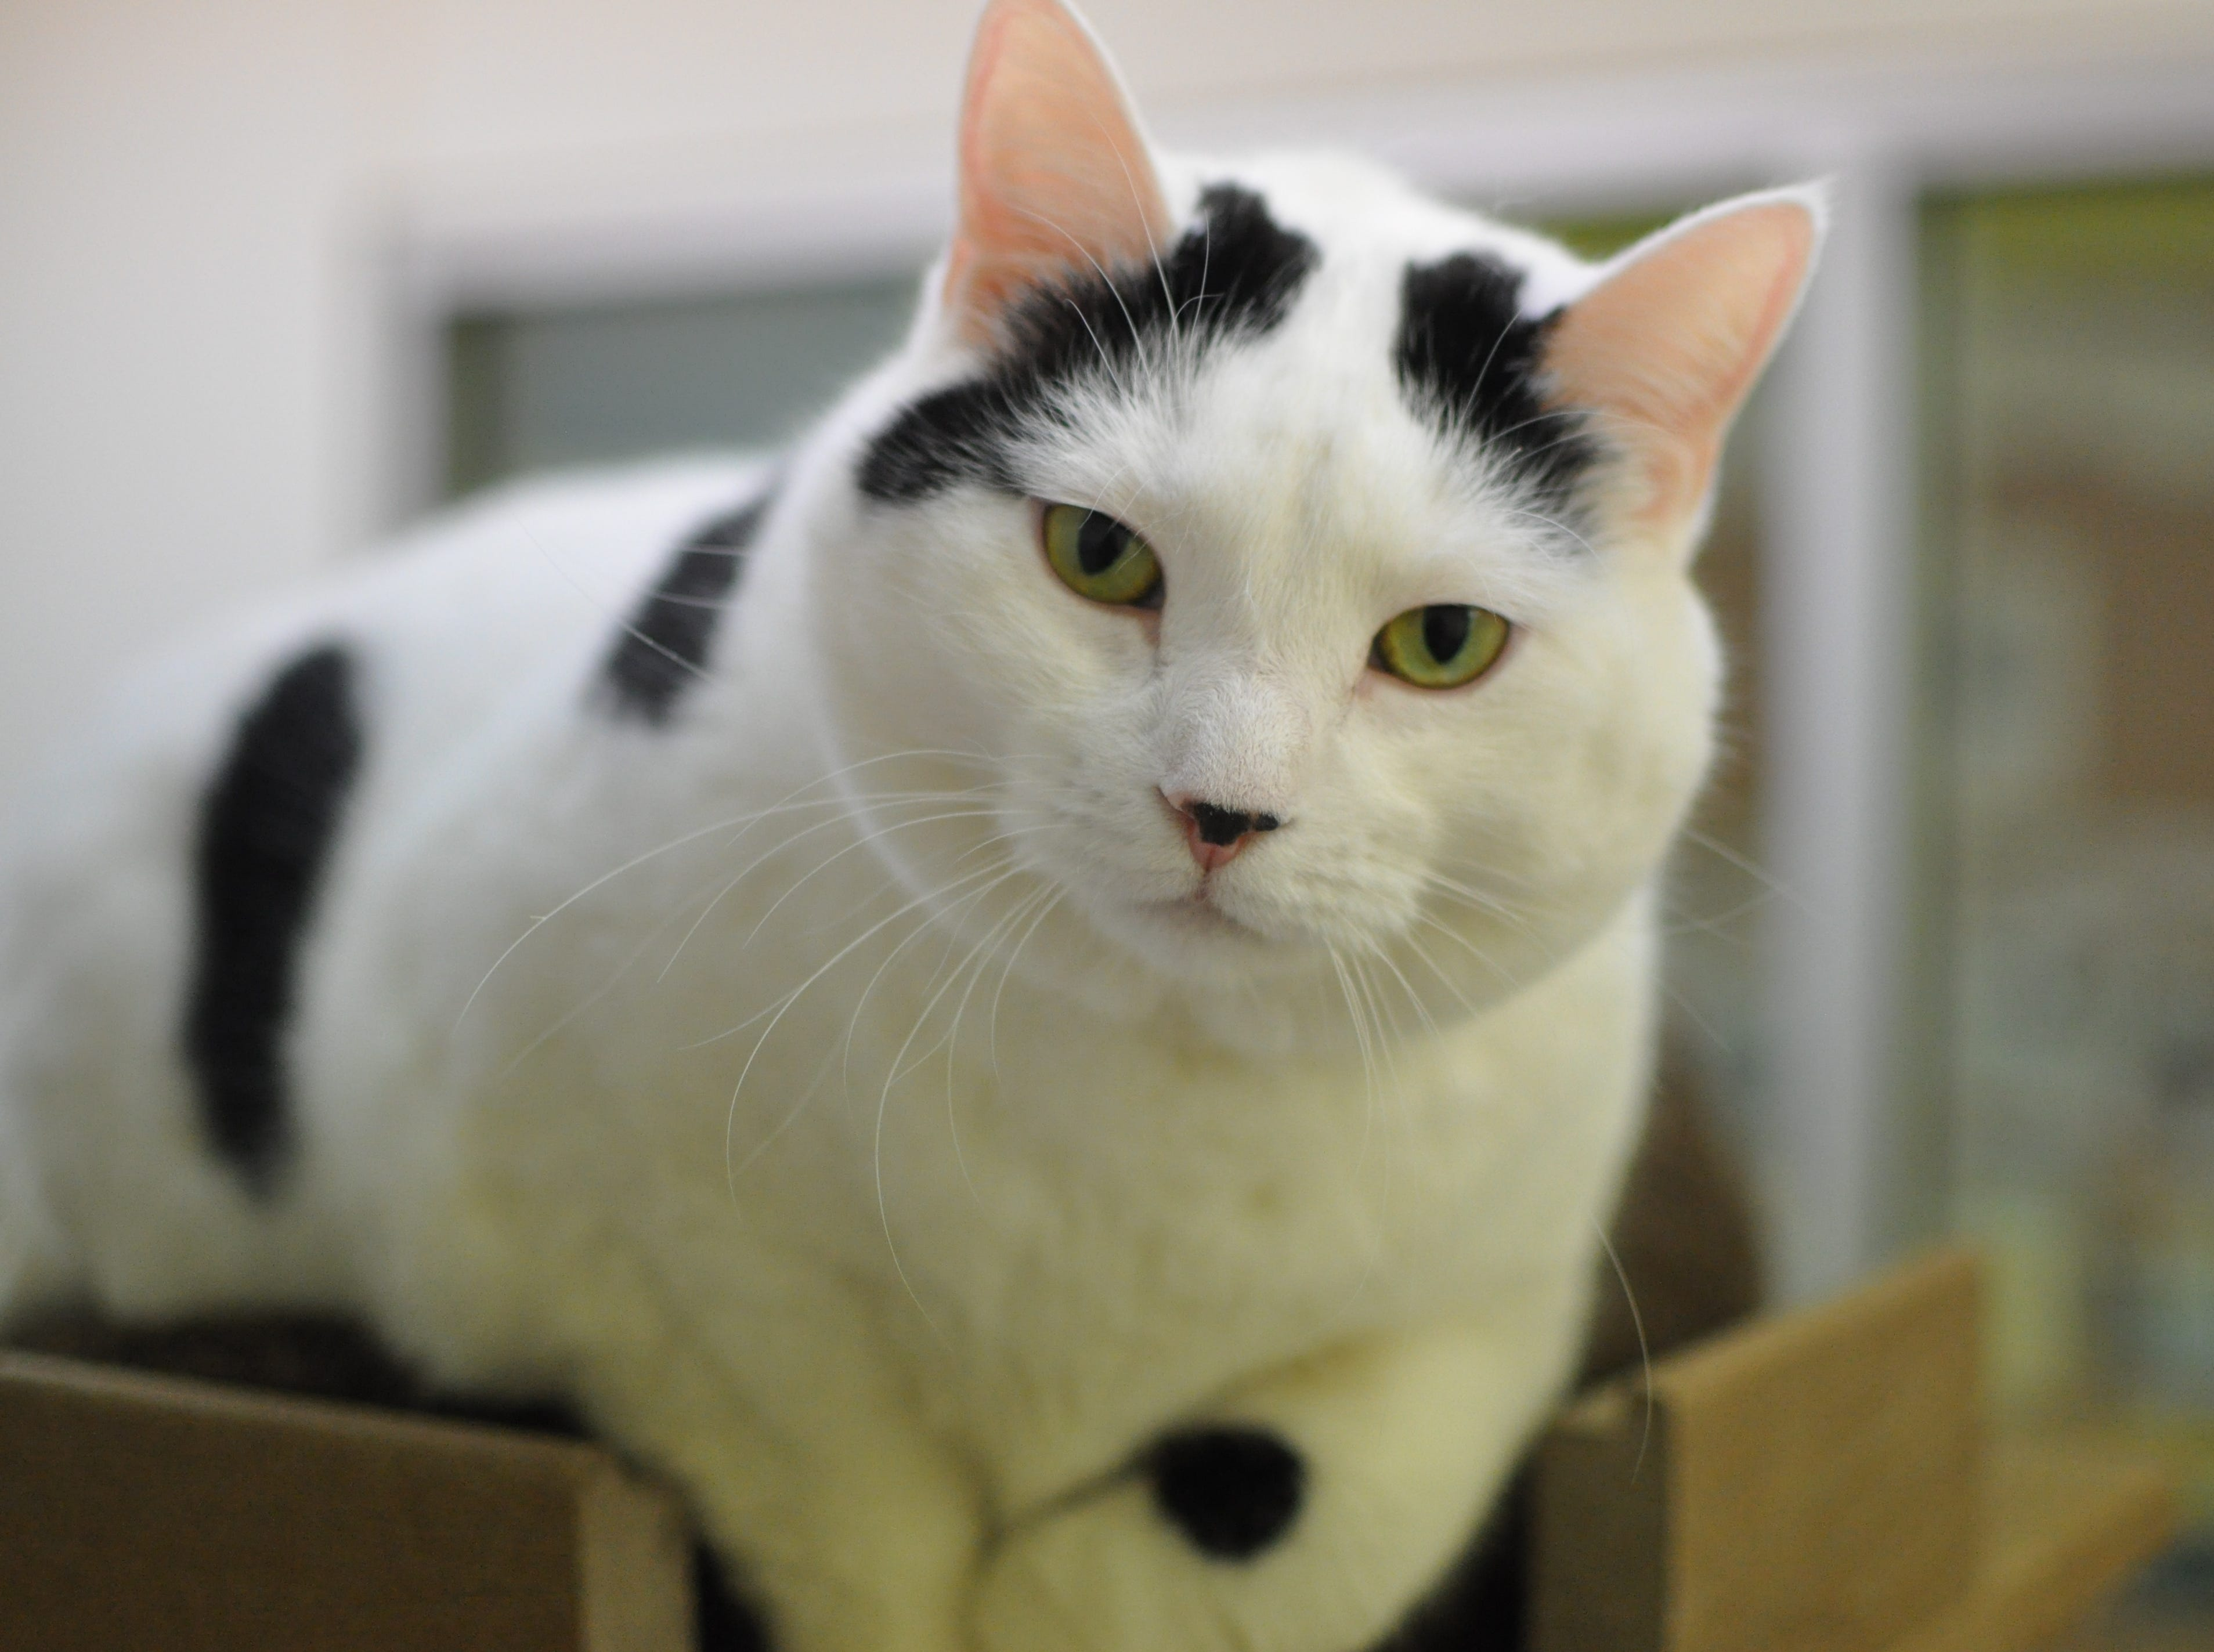 June, 6, loves attention and being the boss. She wants to find a home with her best friend Johnny and is spayed.